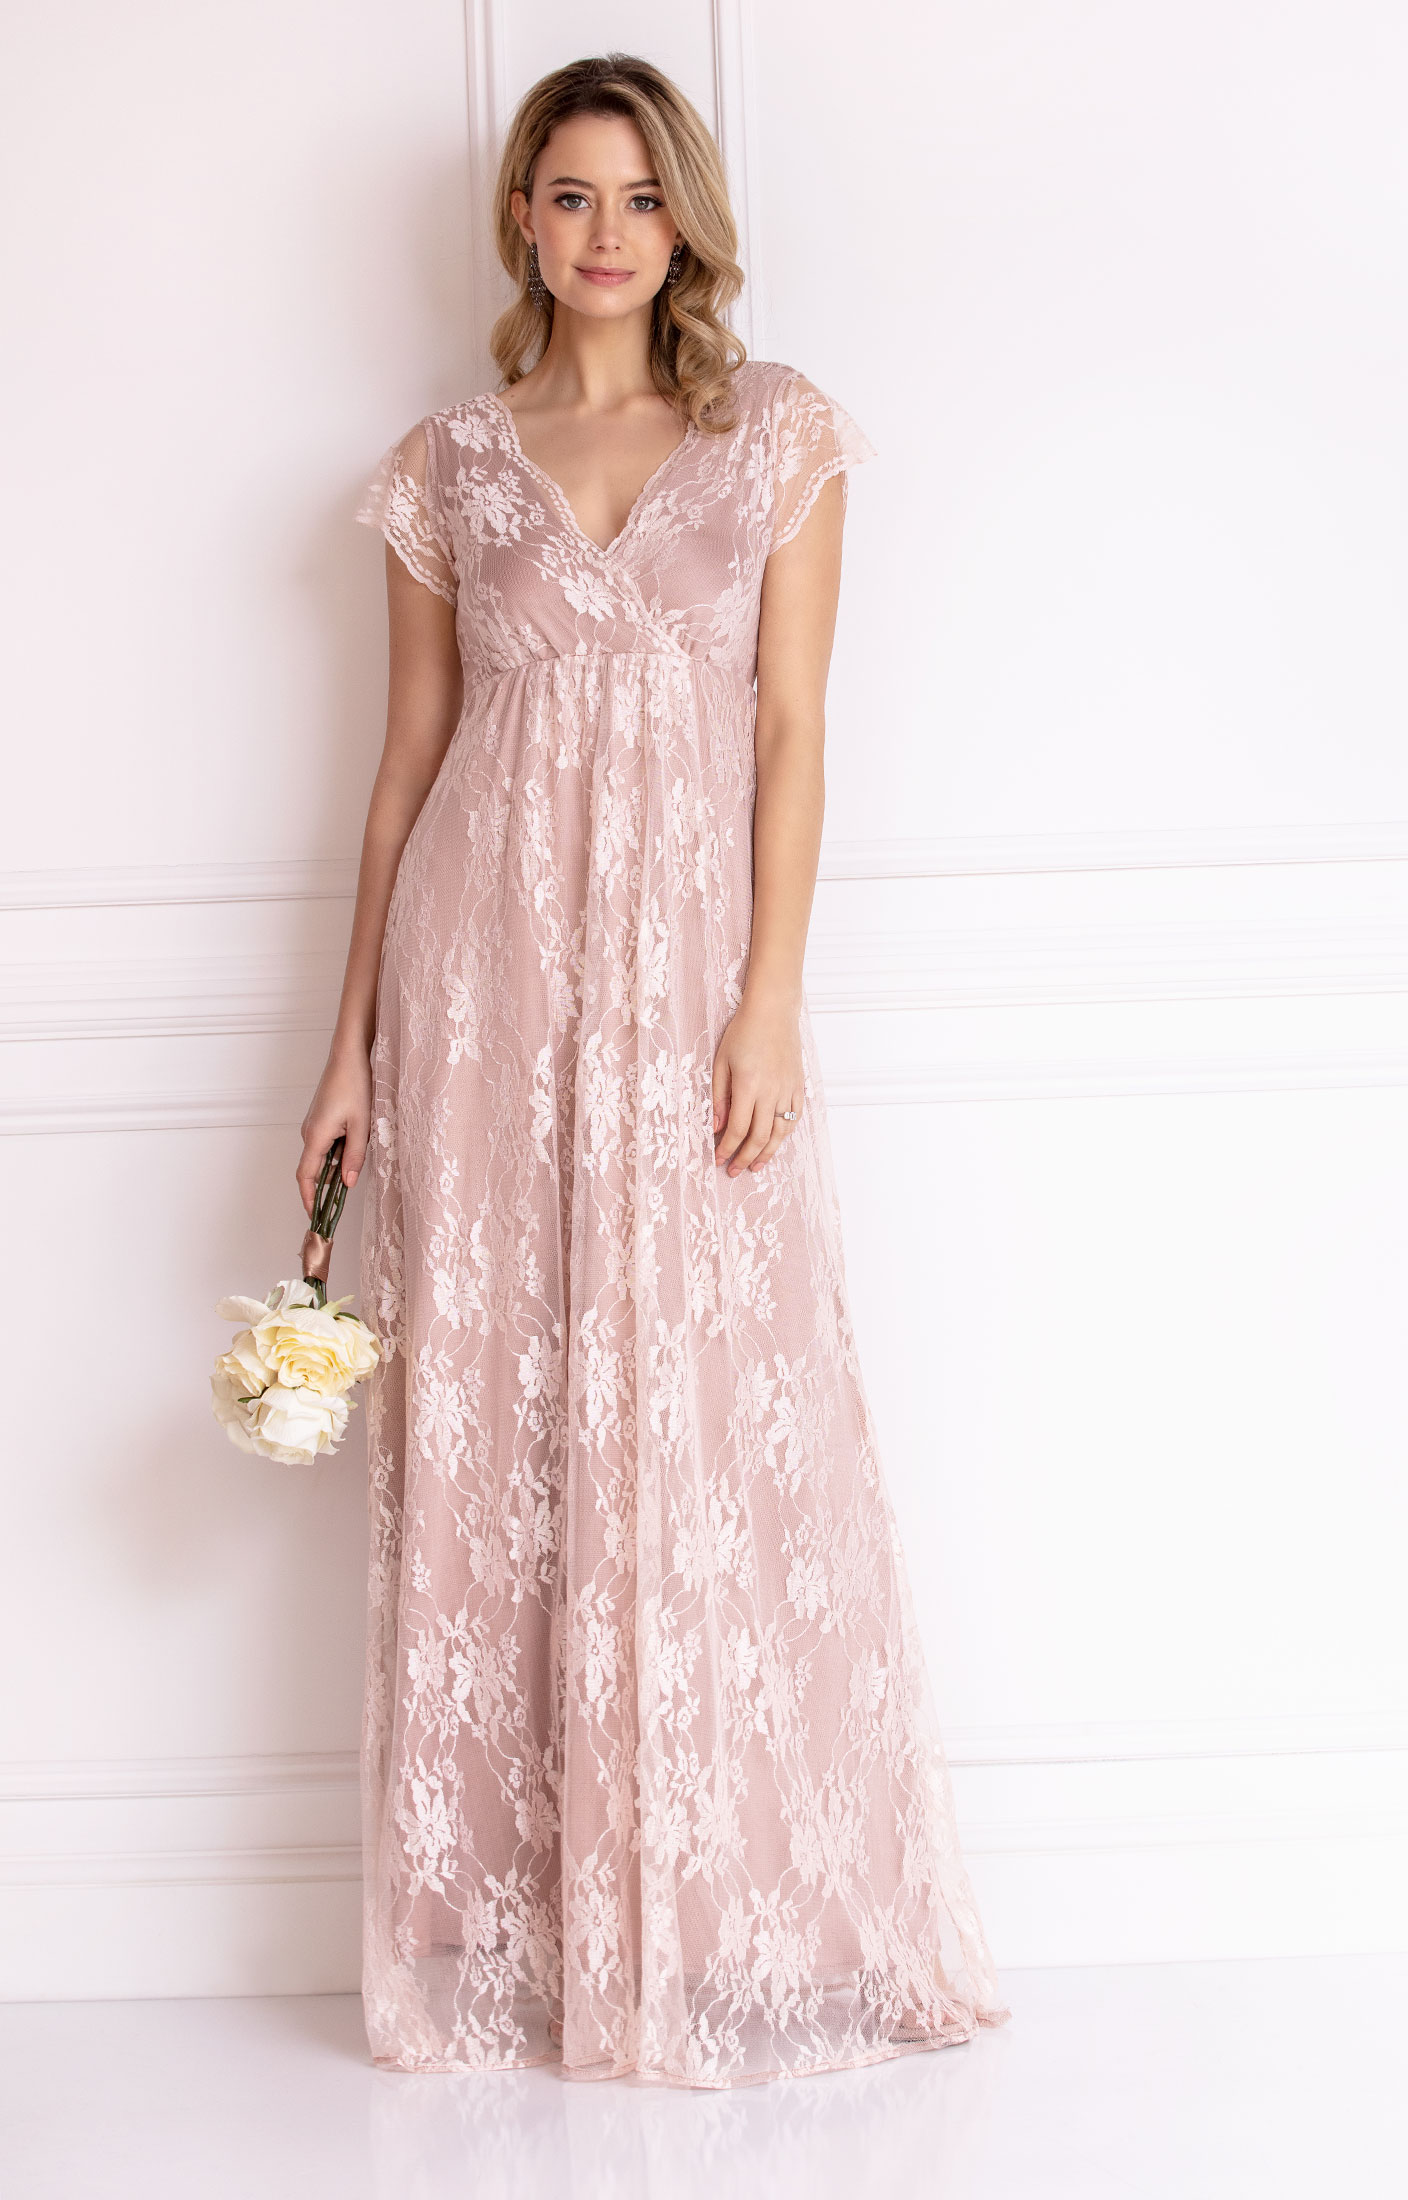 Evangeline evening gown blush wedding dresses evening for How to dress for an evening wedding